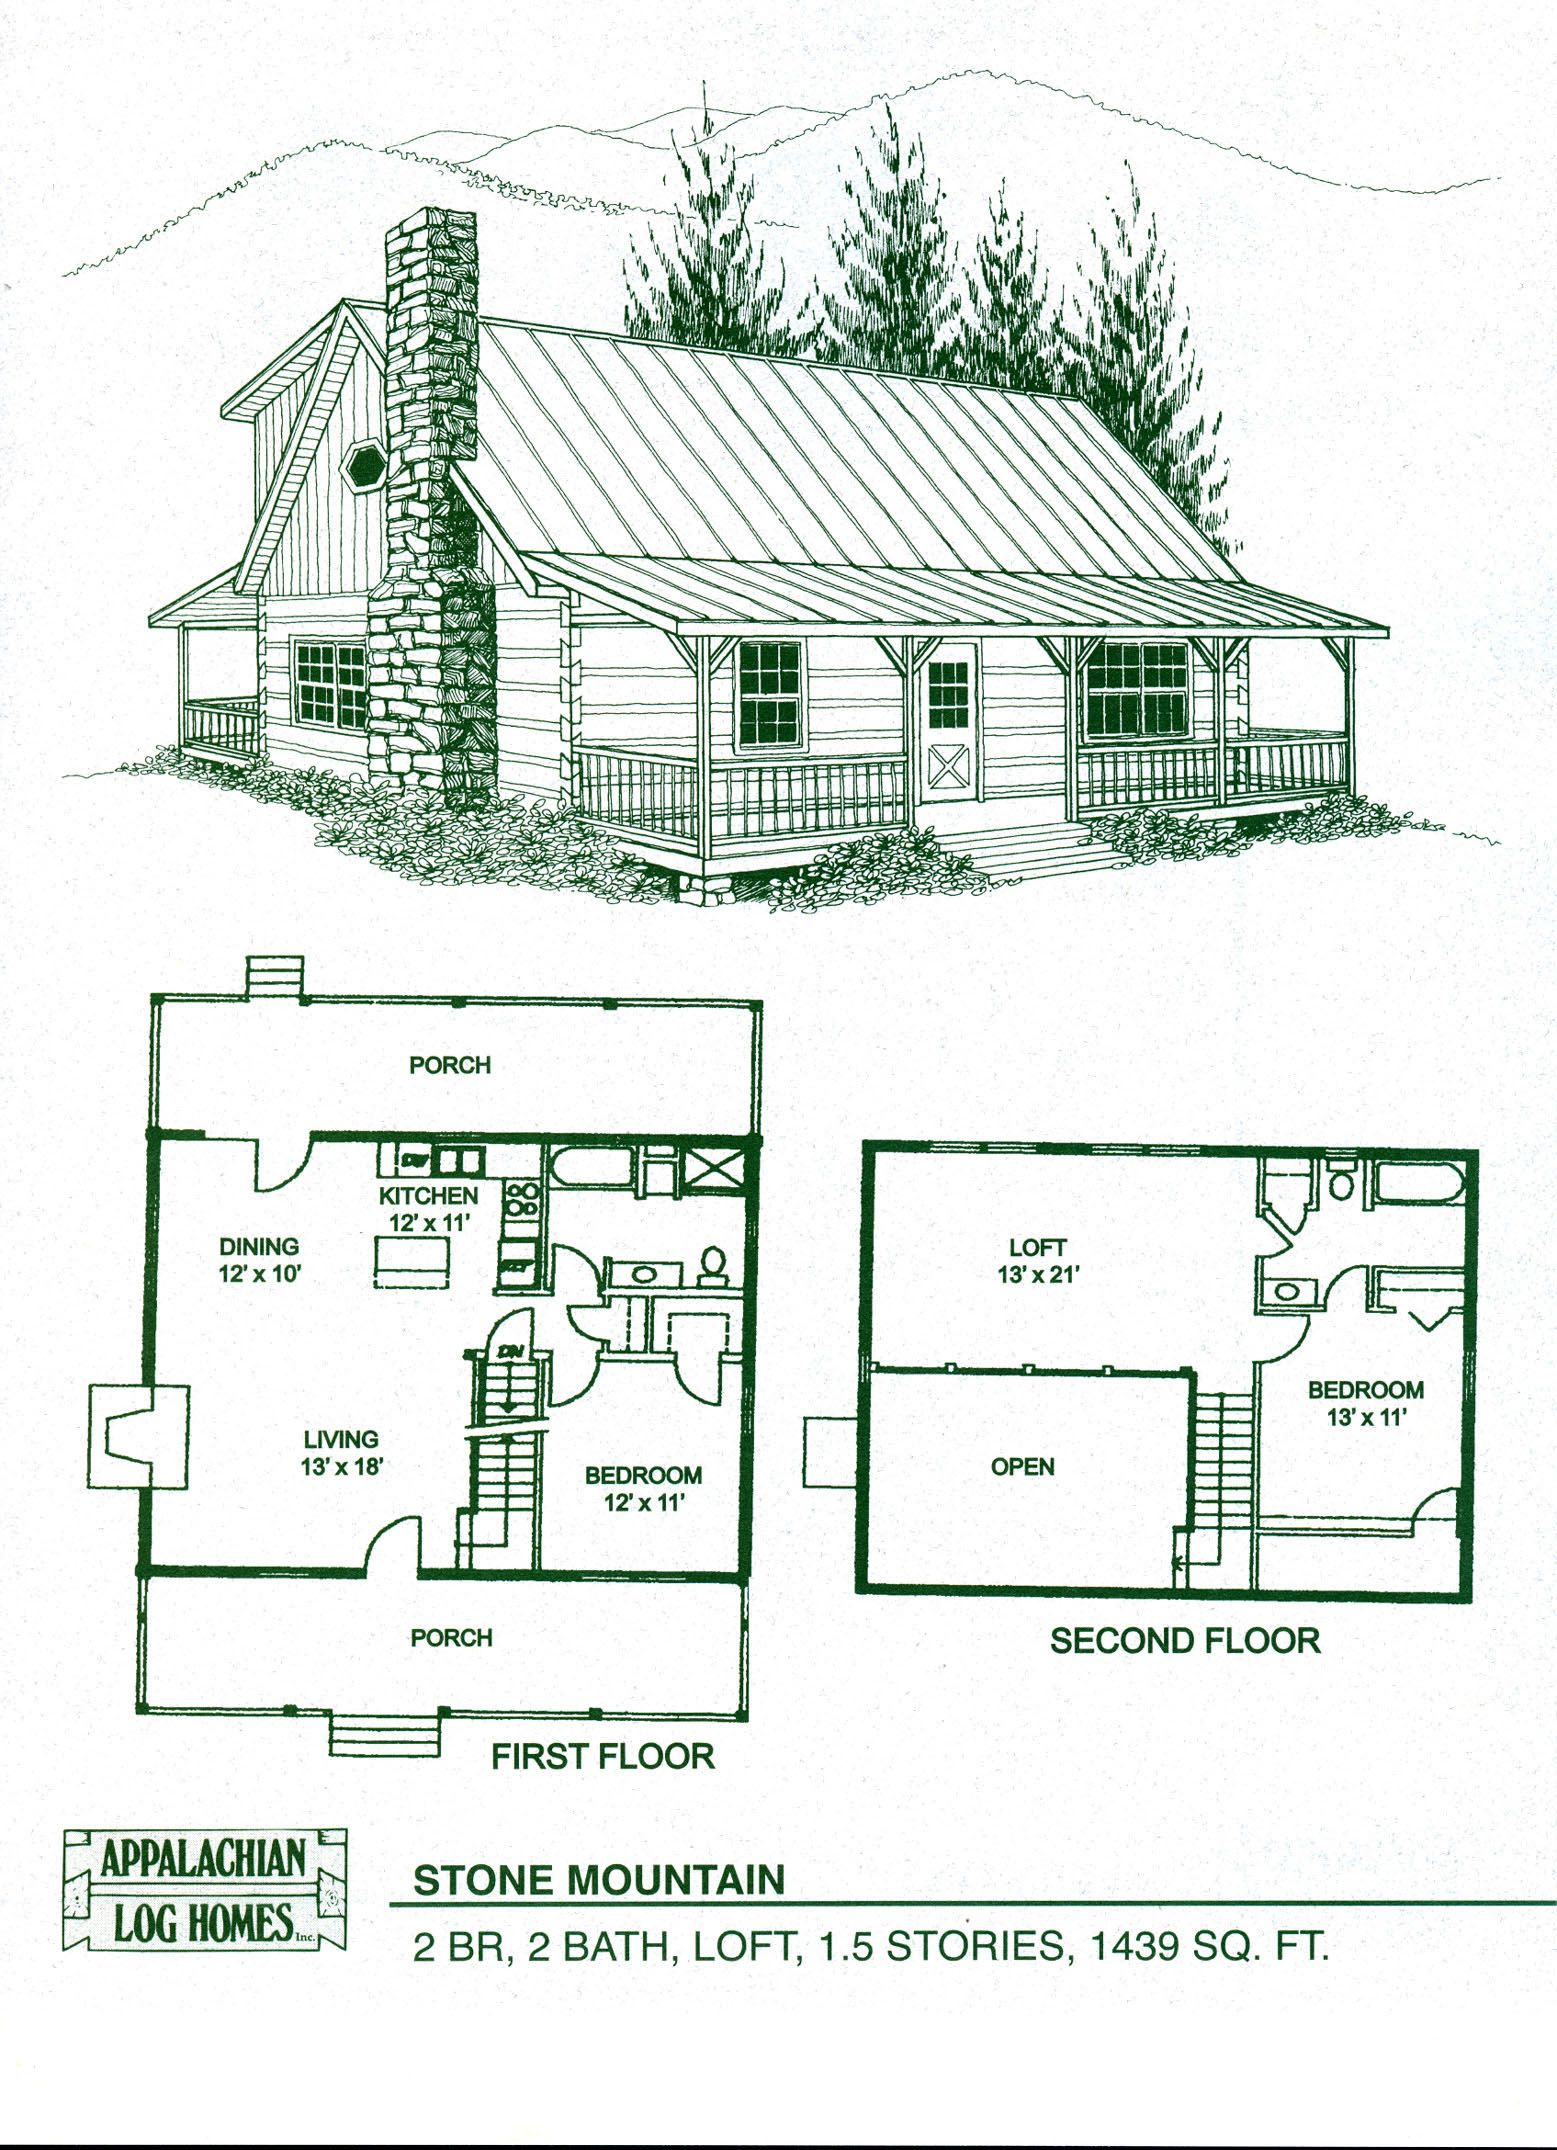 Cabin home plans with loft   Log Home Floor Plans   Log Cabin Kits    Appalachiancabin home plans with loft   Log Home Floor Plans   Log Cabin Kits  . Log Home Designs And Prices. Home Design Ideas